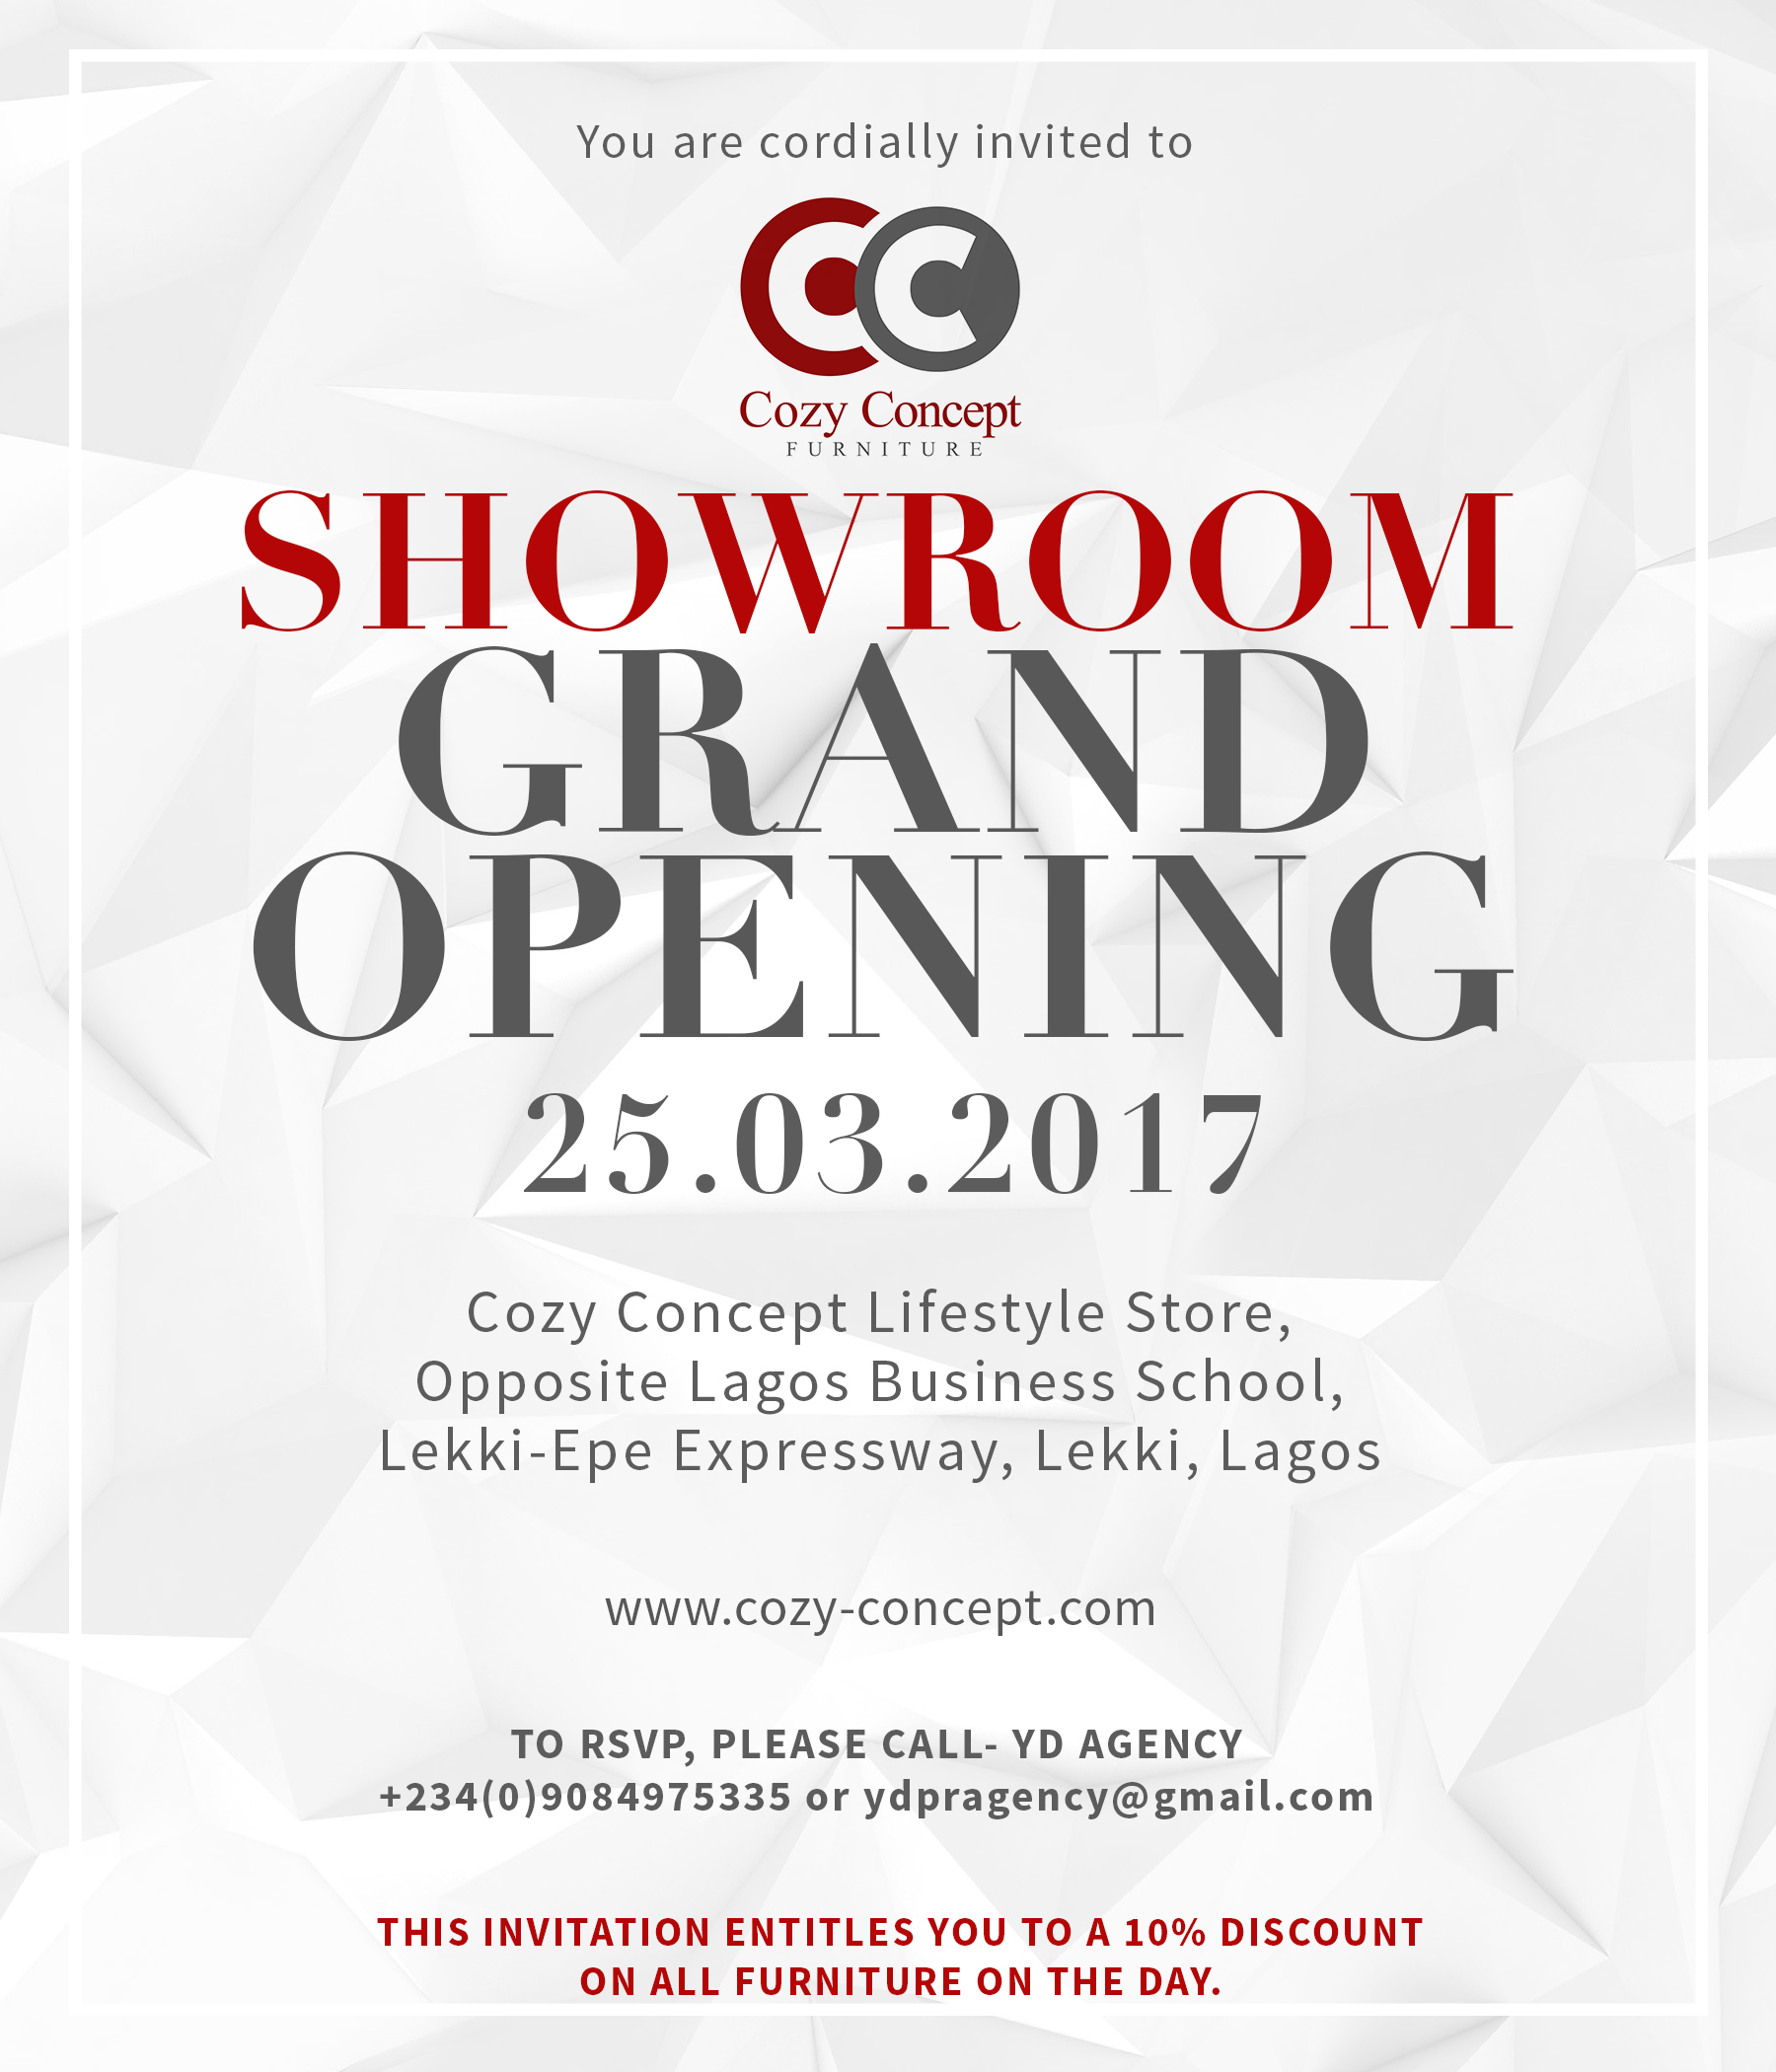 Cozy Concept Showroom Grand Opening Jaguda Com